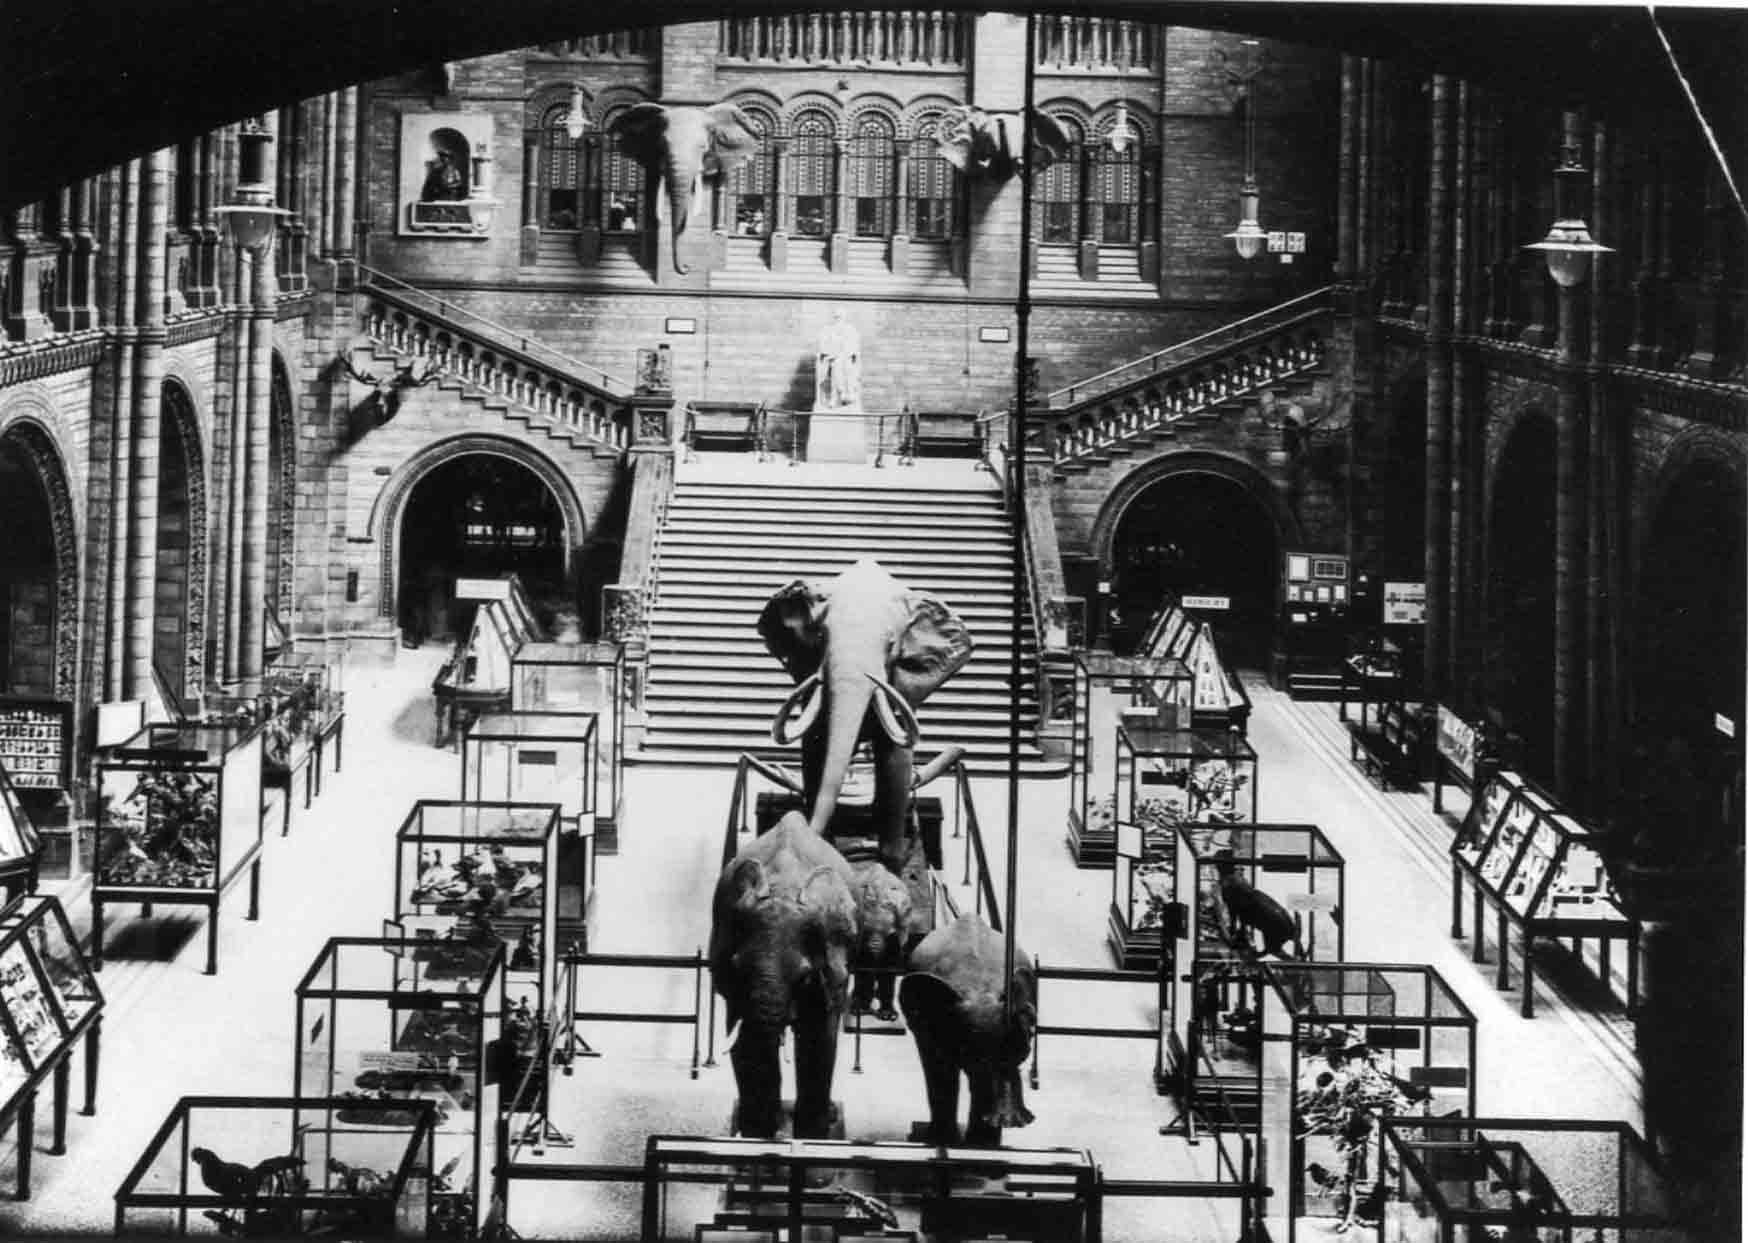 The Natural History Museum in 1924. © The Trustees of the Natural History Museum, London